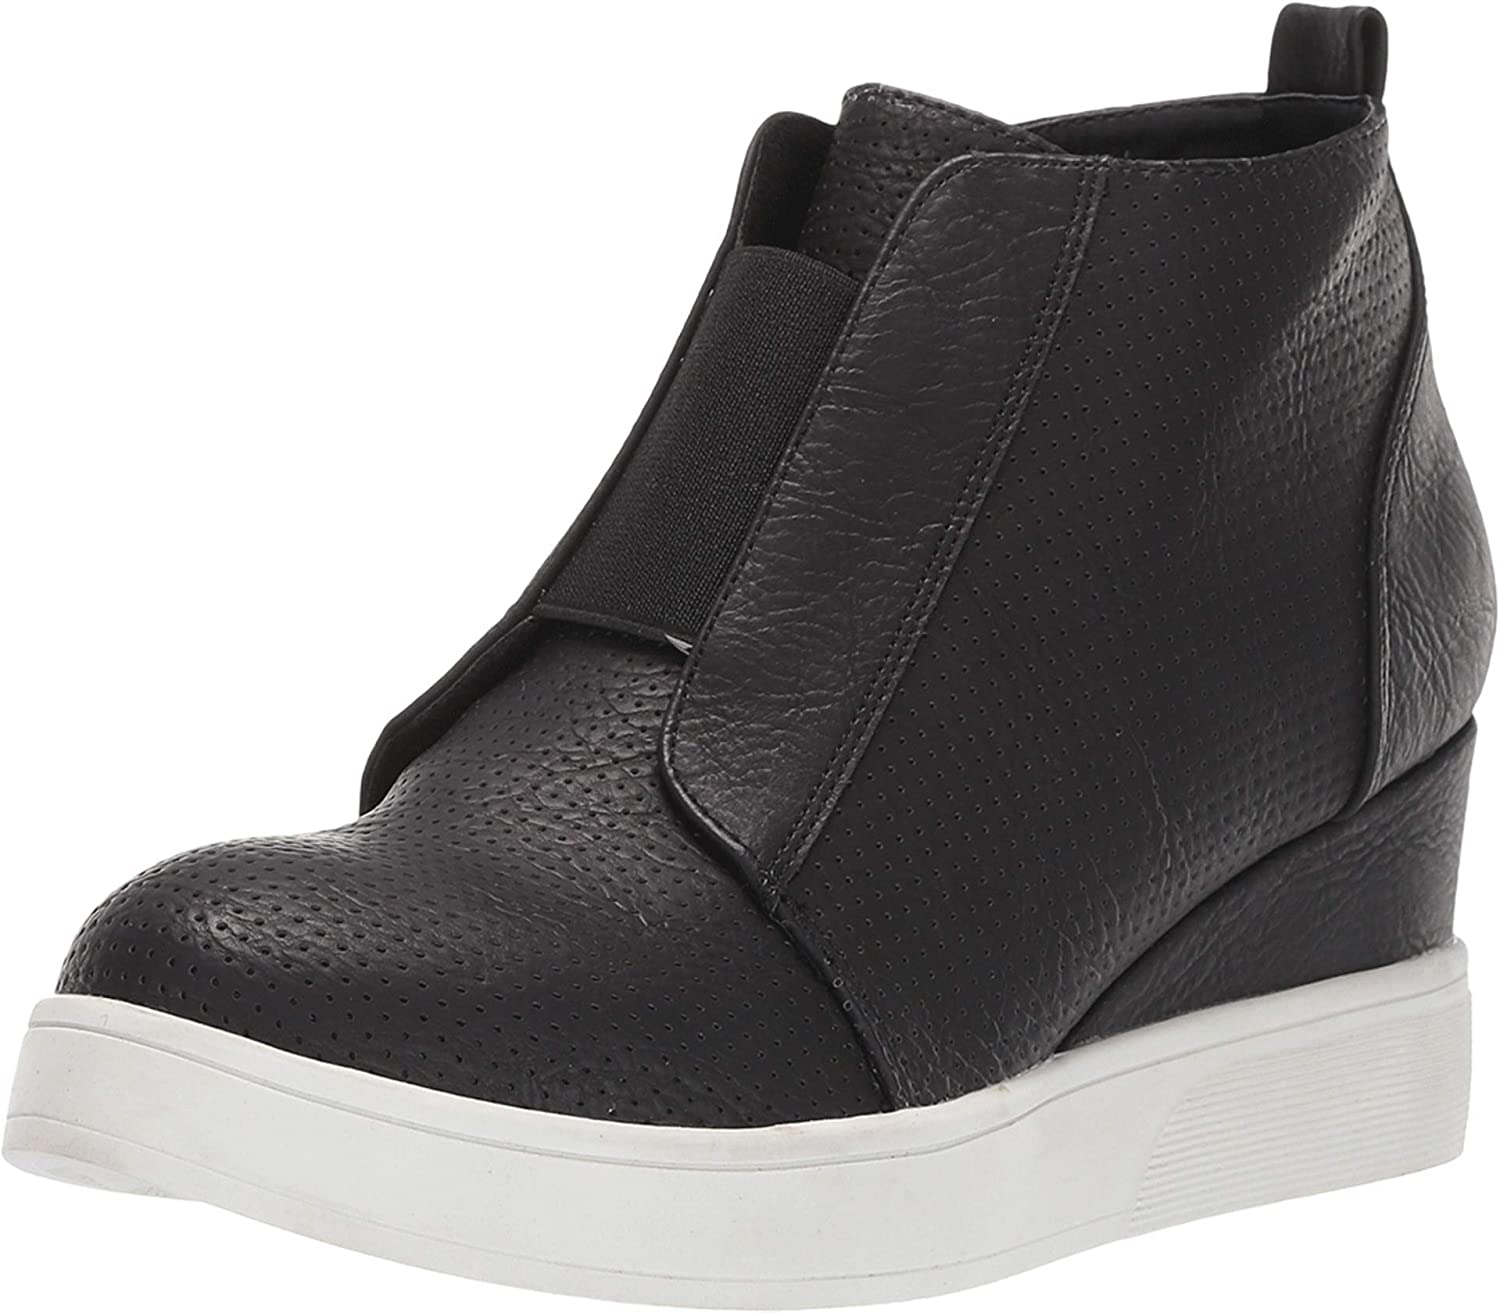 Journee Collection Women's Shoes Clara